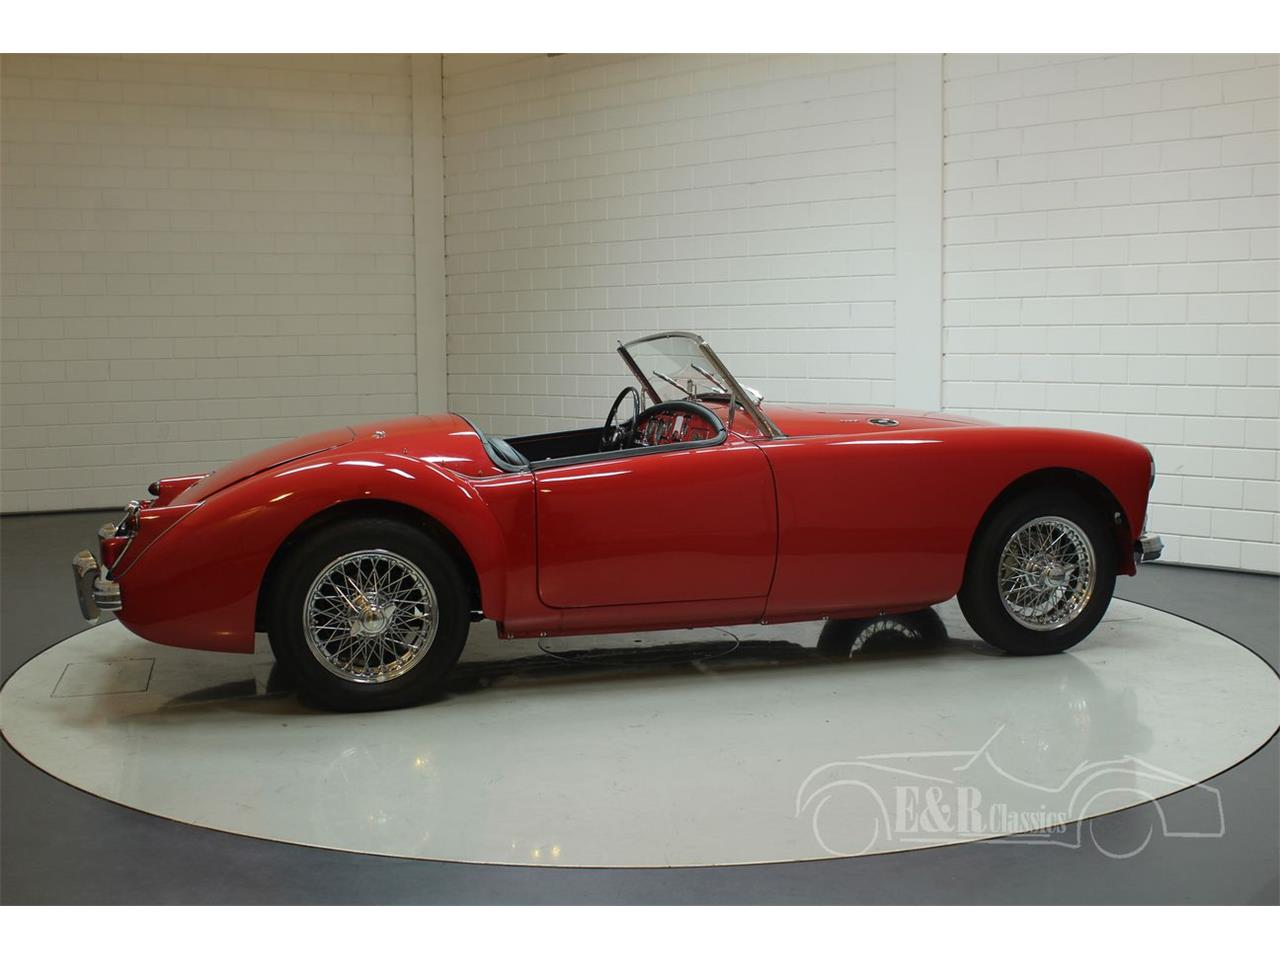 Large Picture of '59 MG MGA located in - Keine Angabe - - PGST